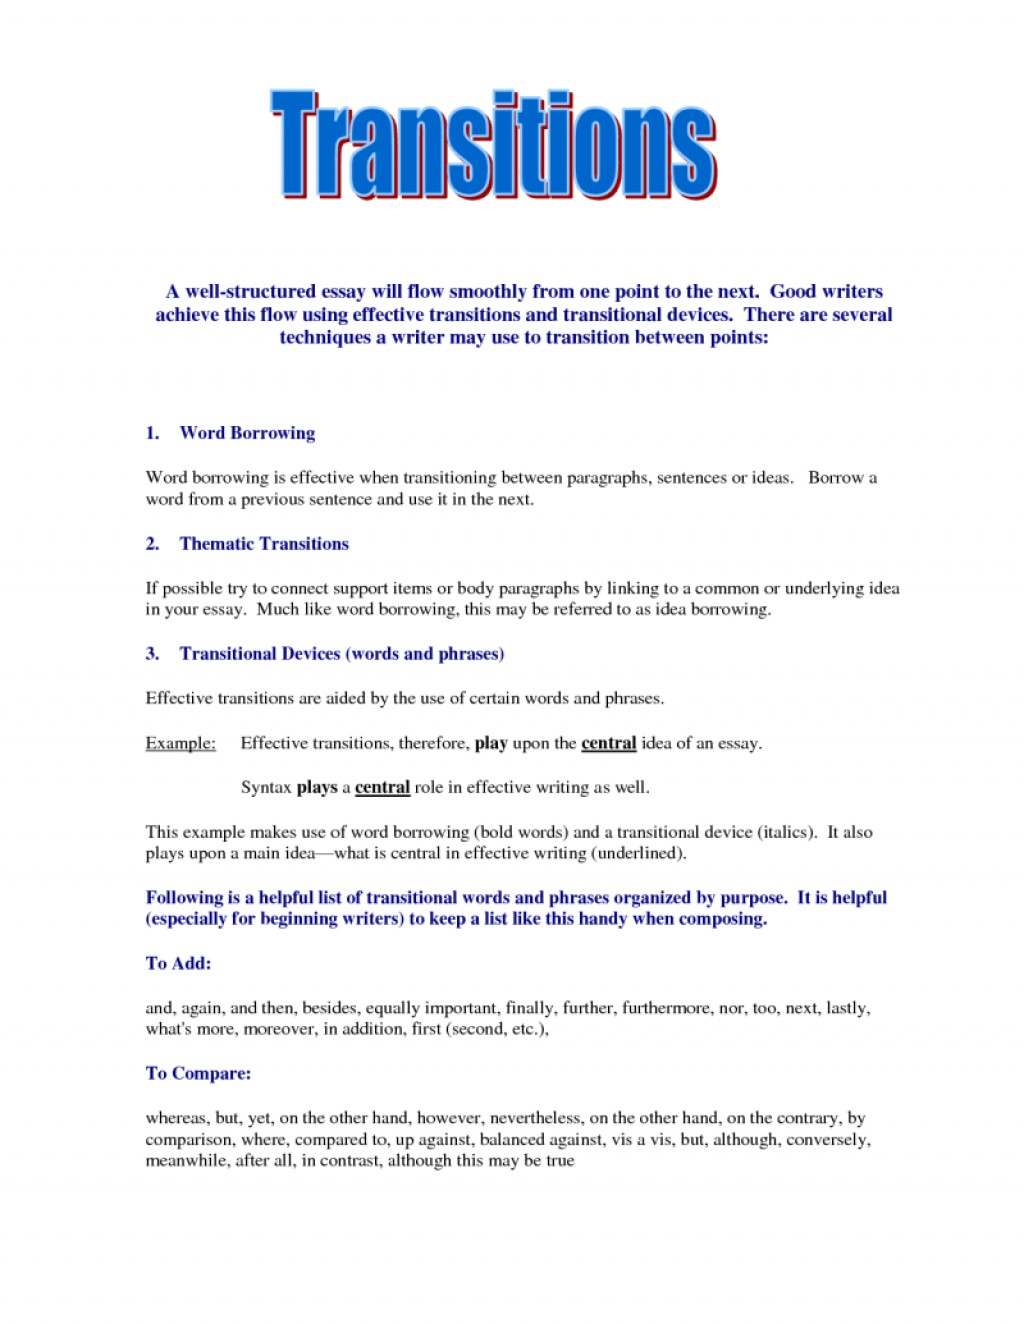 027 Transition Words And Phrases Fors Supporting Paragraphs Paragraph Transitions Ucsb Writing Program First Body Awesome Collection Of Sentences Examples You Amazing For Essays Opinion Narrative 5th Grade Expository Large